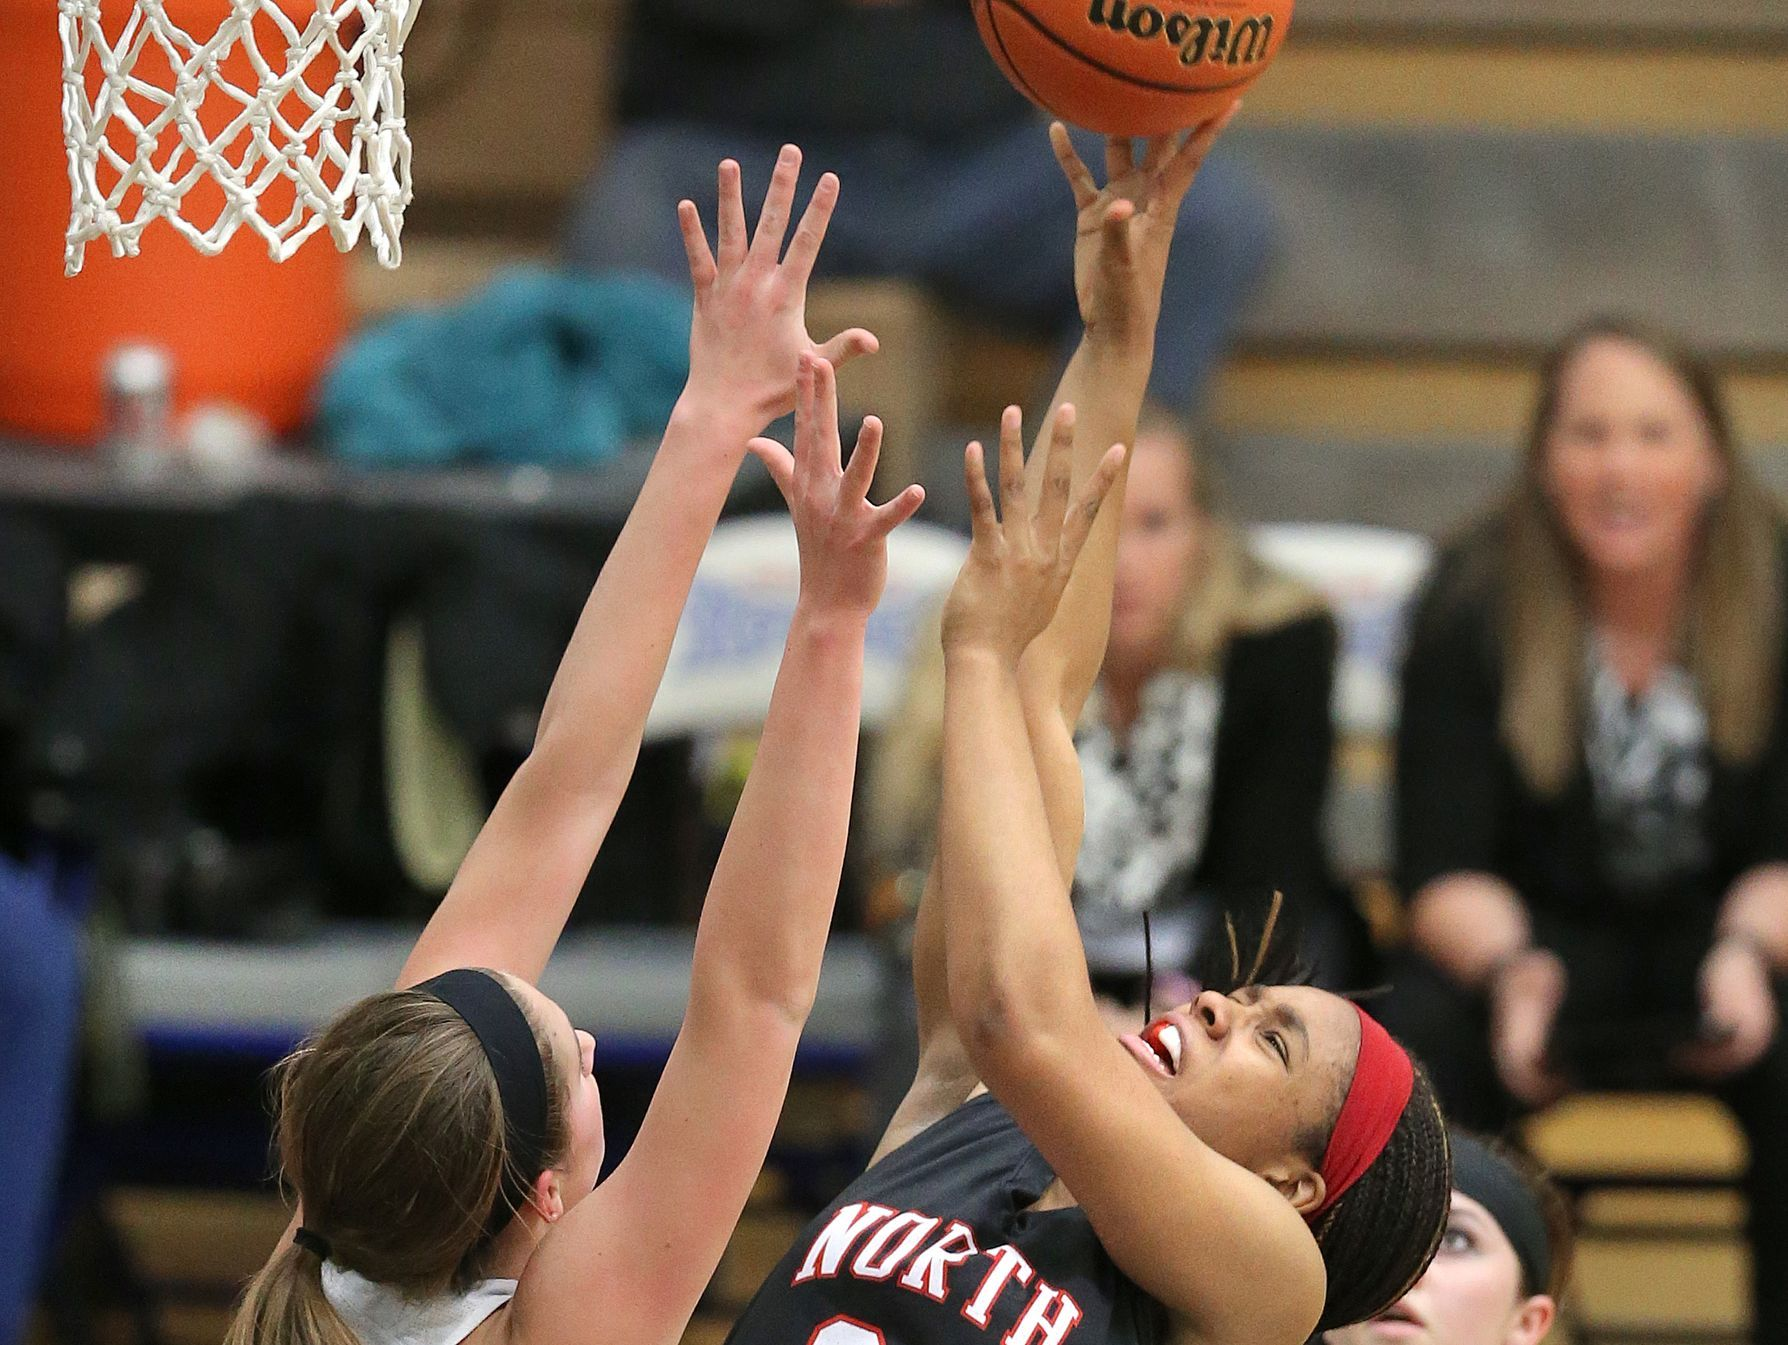 Noblesville's Emily Kiser tries to block the shot of North Central's Ajanae' Thomas in the first half of the 2015 IHSAA Girls Basketball Sectional game held at Hamilton Southeastern High School on Friday, Feb. 13, 2015. Noblesville beat North Central 68-39.